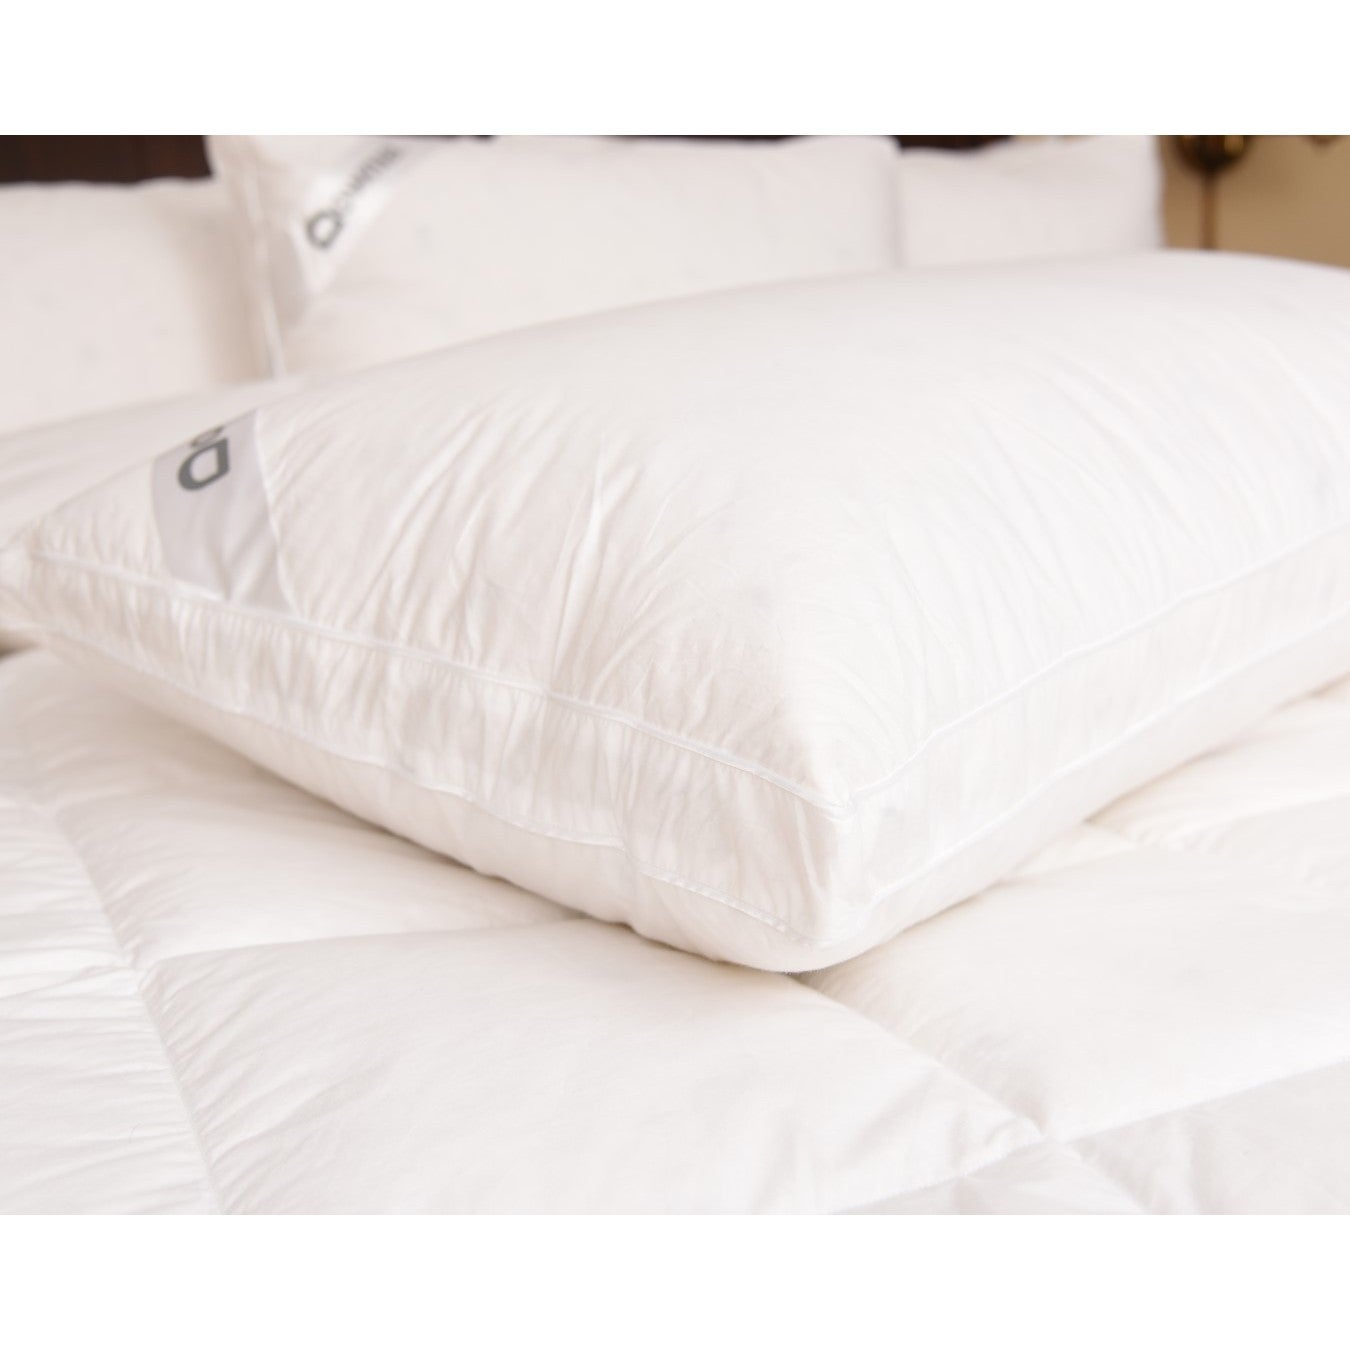 Downia PILLOW PROTECTOR Designed For Down Pillows